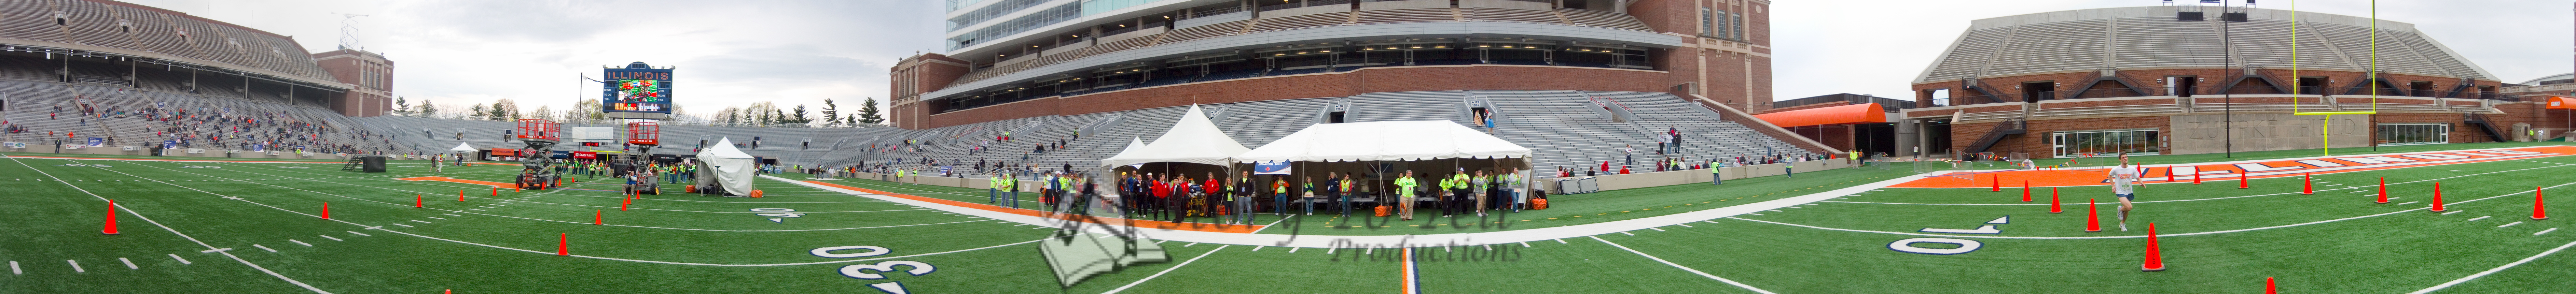 p88-1-p88-8half.jpg  Illinois Marathon 2011 Memorial Stadium Finish Line